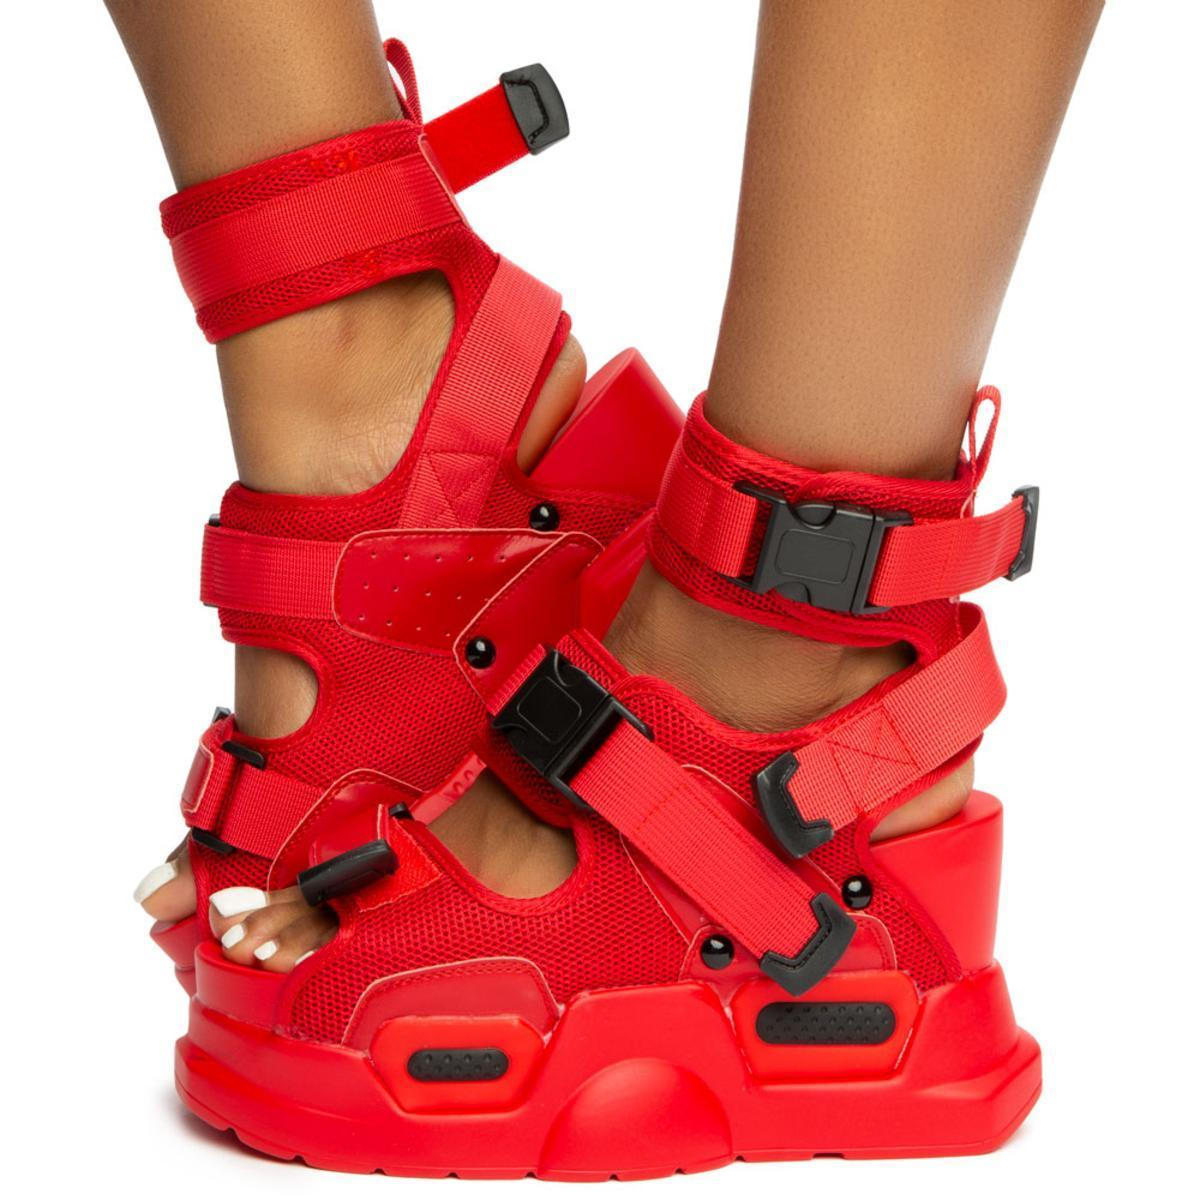 Anthony-Wang-Mulberry-01-Red-Sneaker-Sporty-Chunky-Platform-Wedge-Sandal thumbnail 2